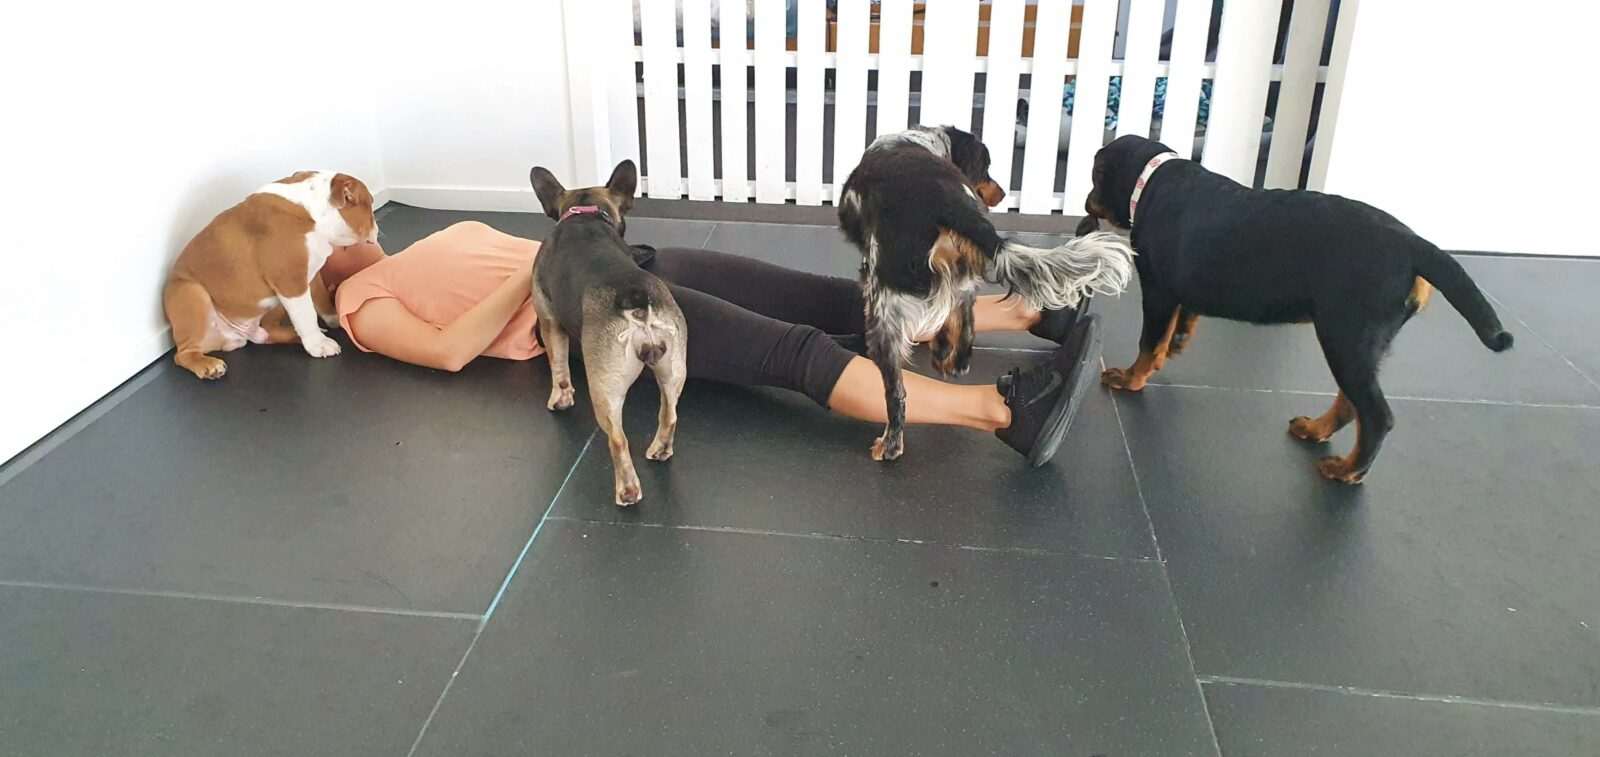 Human on floor with dogs on top